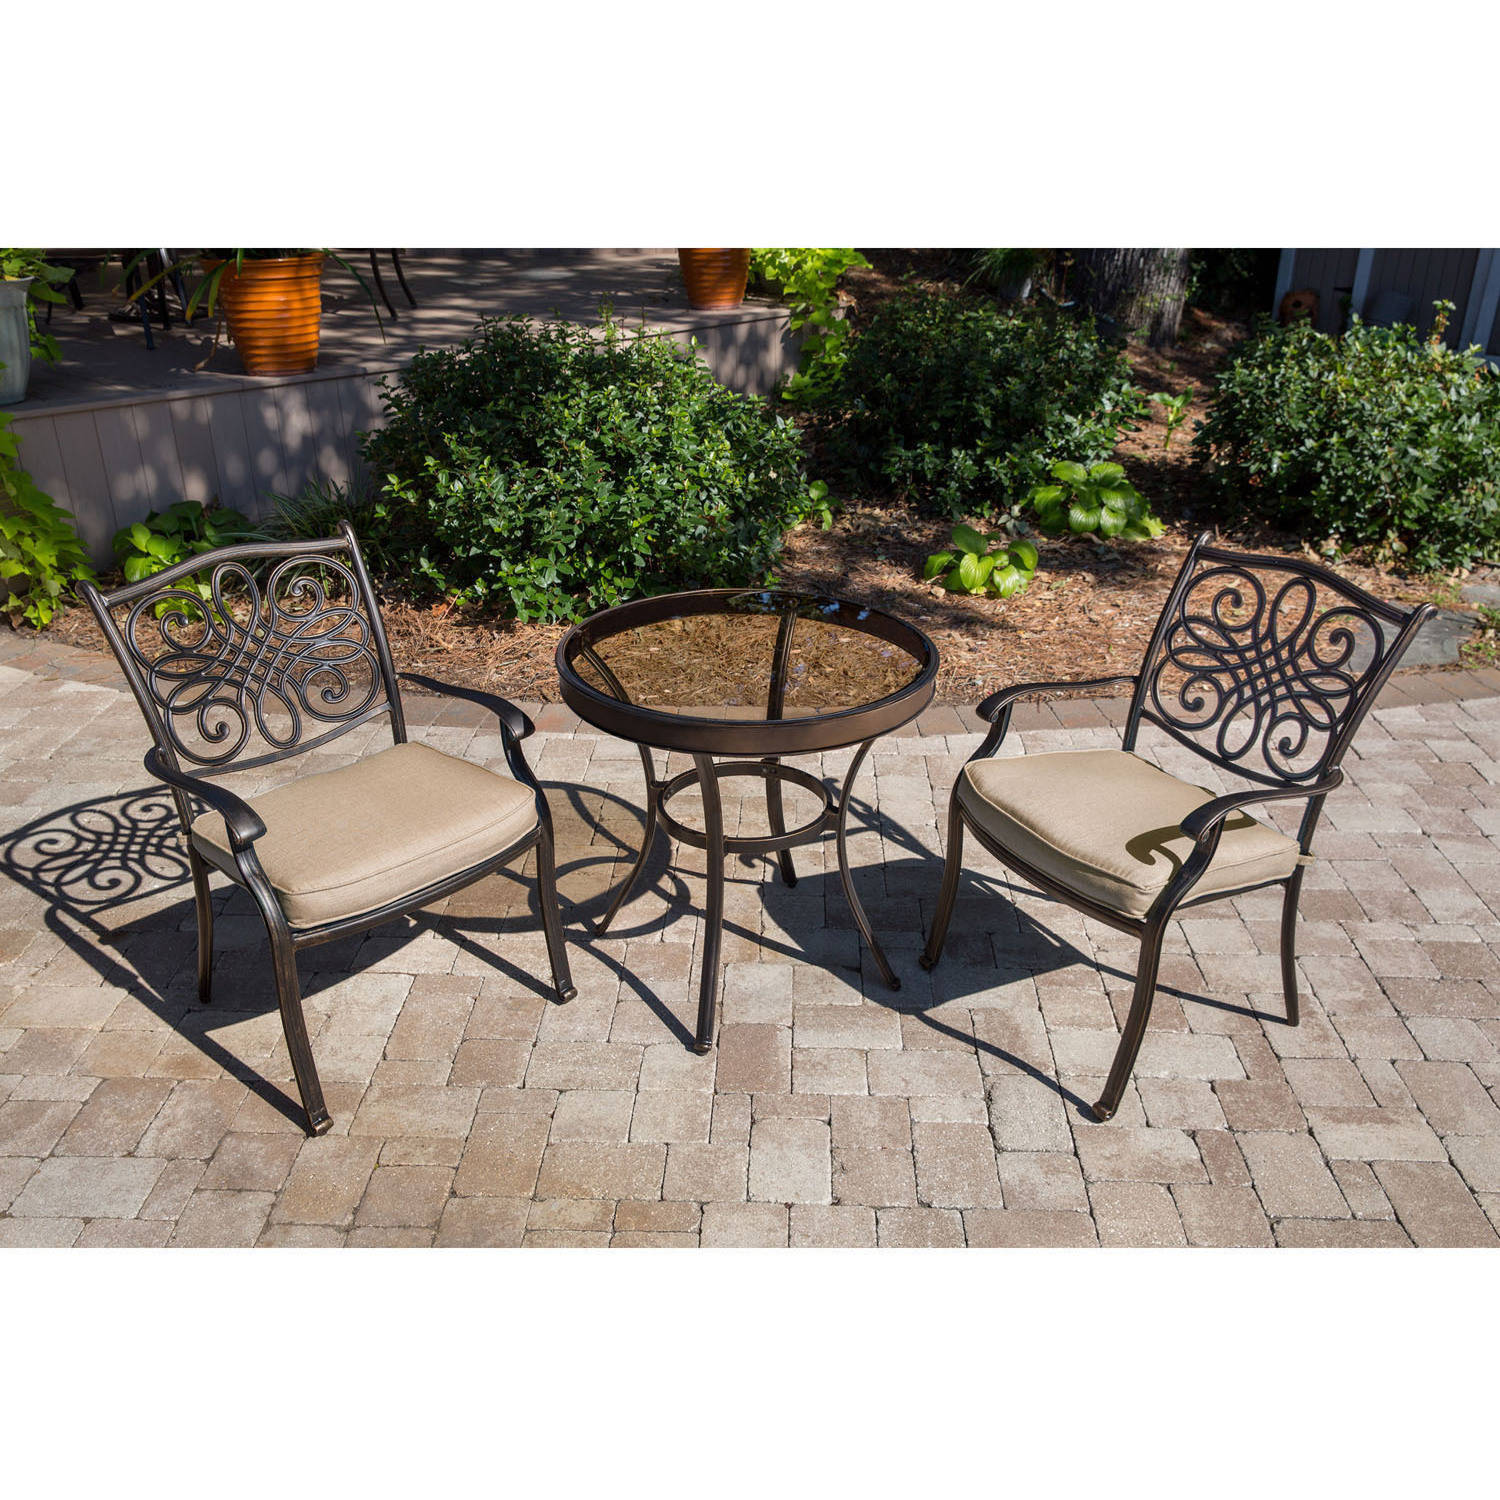 Hanover Outdoor Traditions 3-Piece Glass-Top Bistro Set with Stationary Chairs